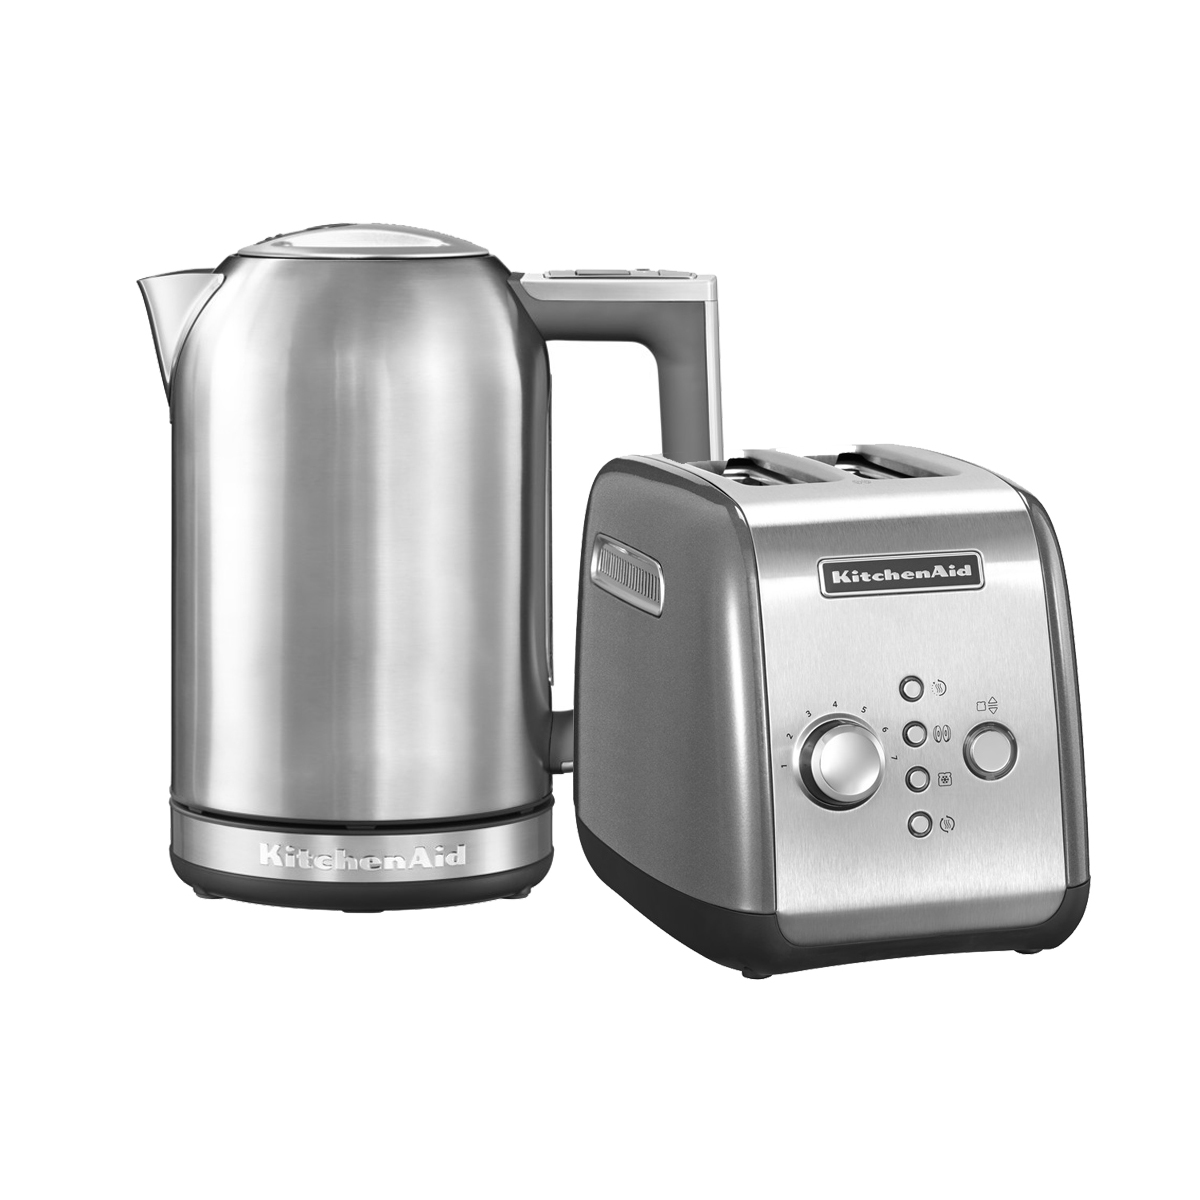 KitchenAid Набор Завтрак KitchenAid Тостер 5KMT221ECU + Чайник 5KEK1722ESX, серебристый